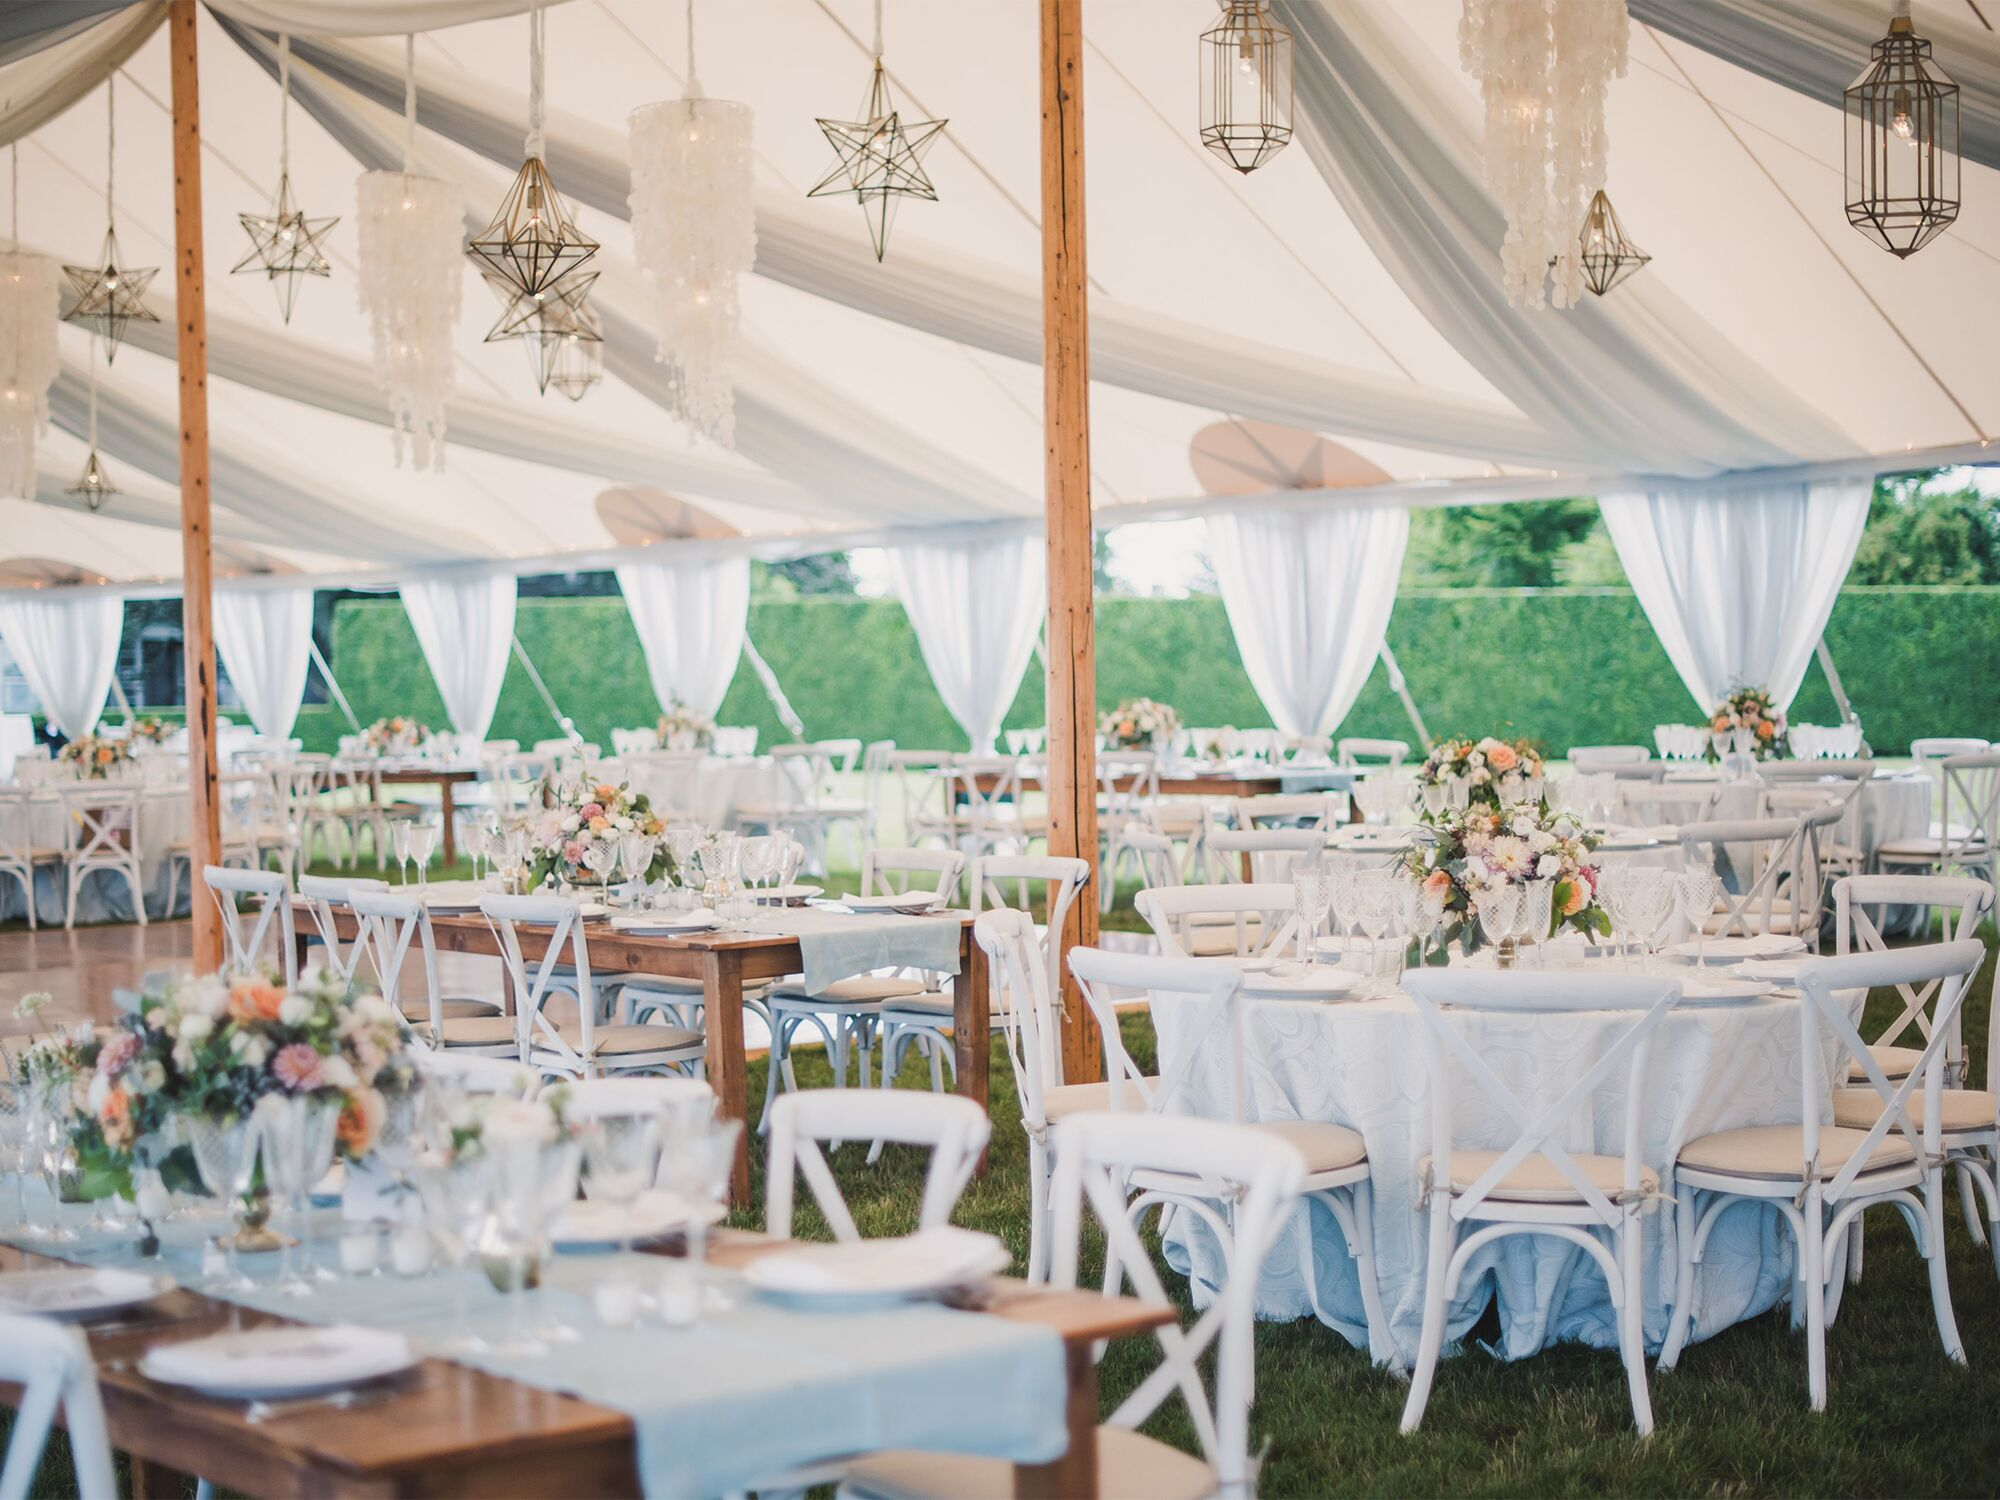 Planning An Outdoor Wedding: Don't Make These Mistakes – Part 1 forecasting